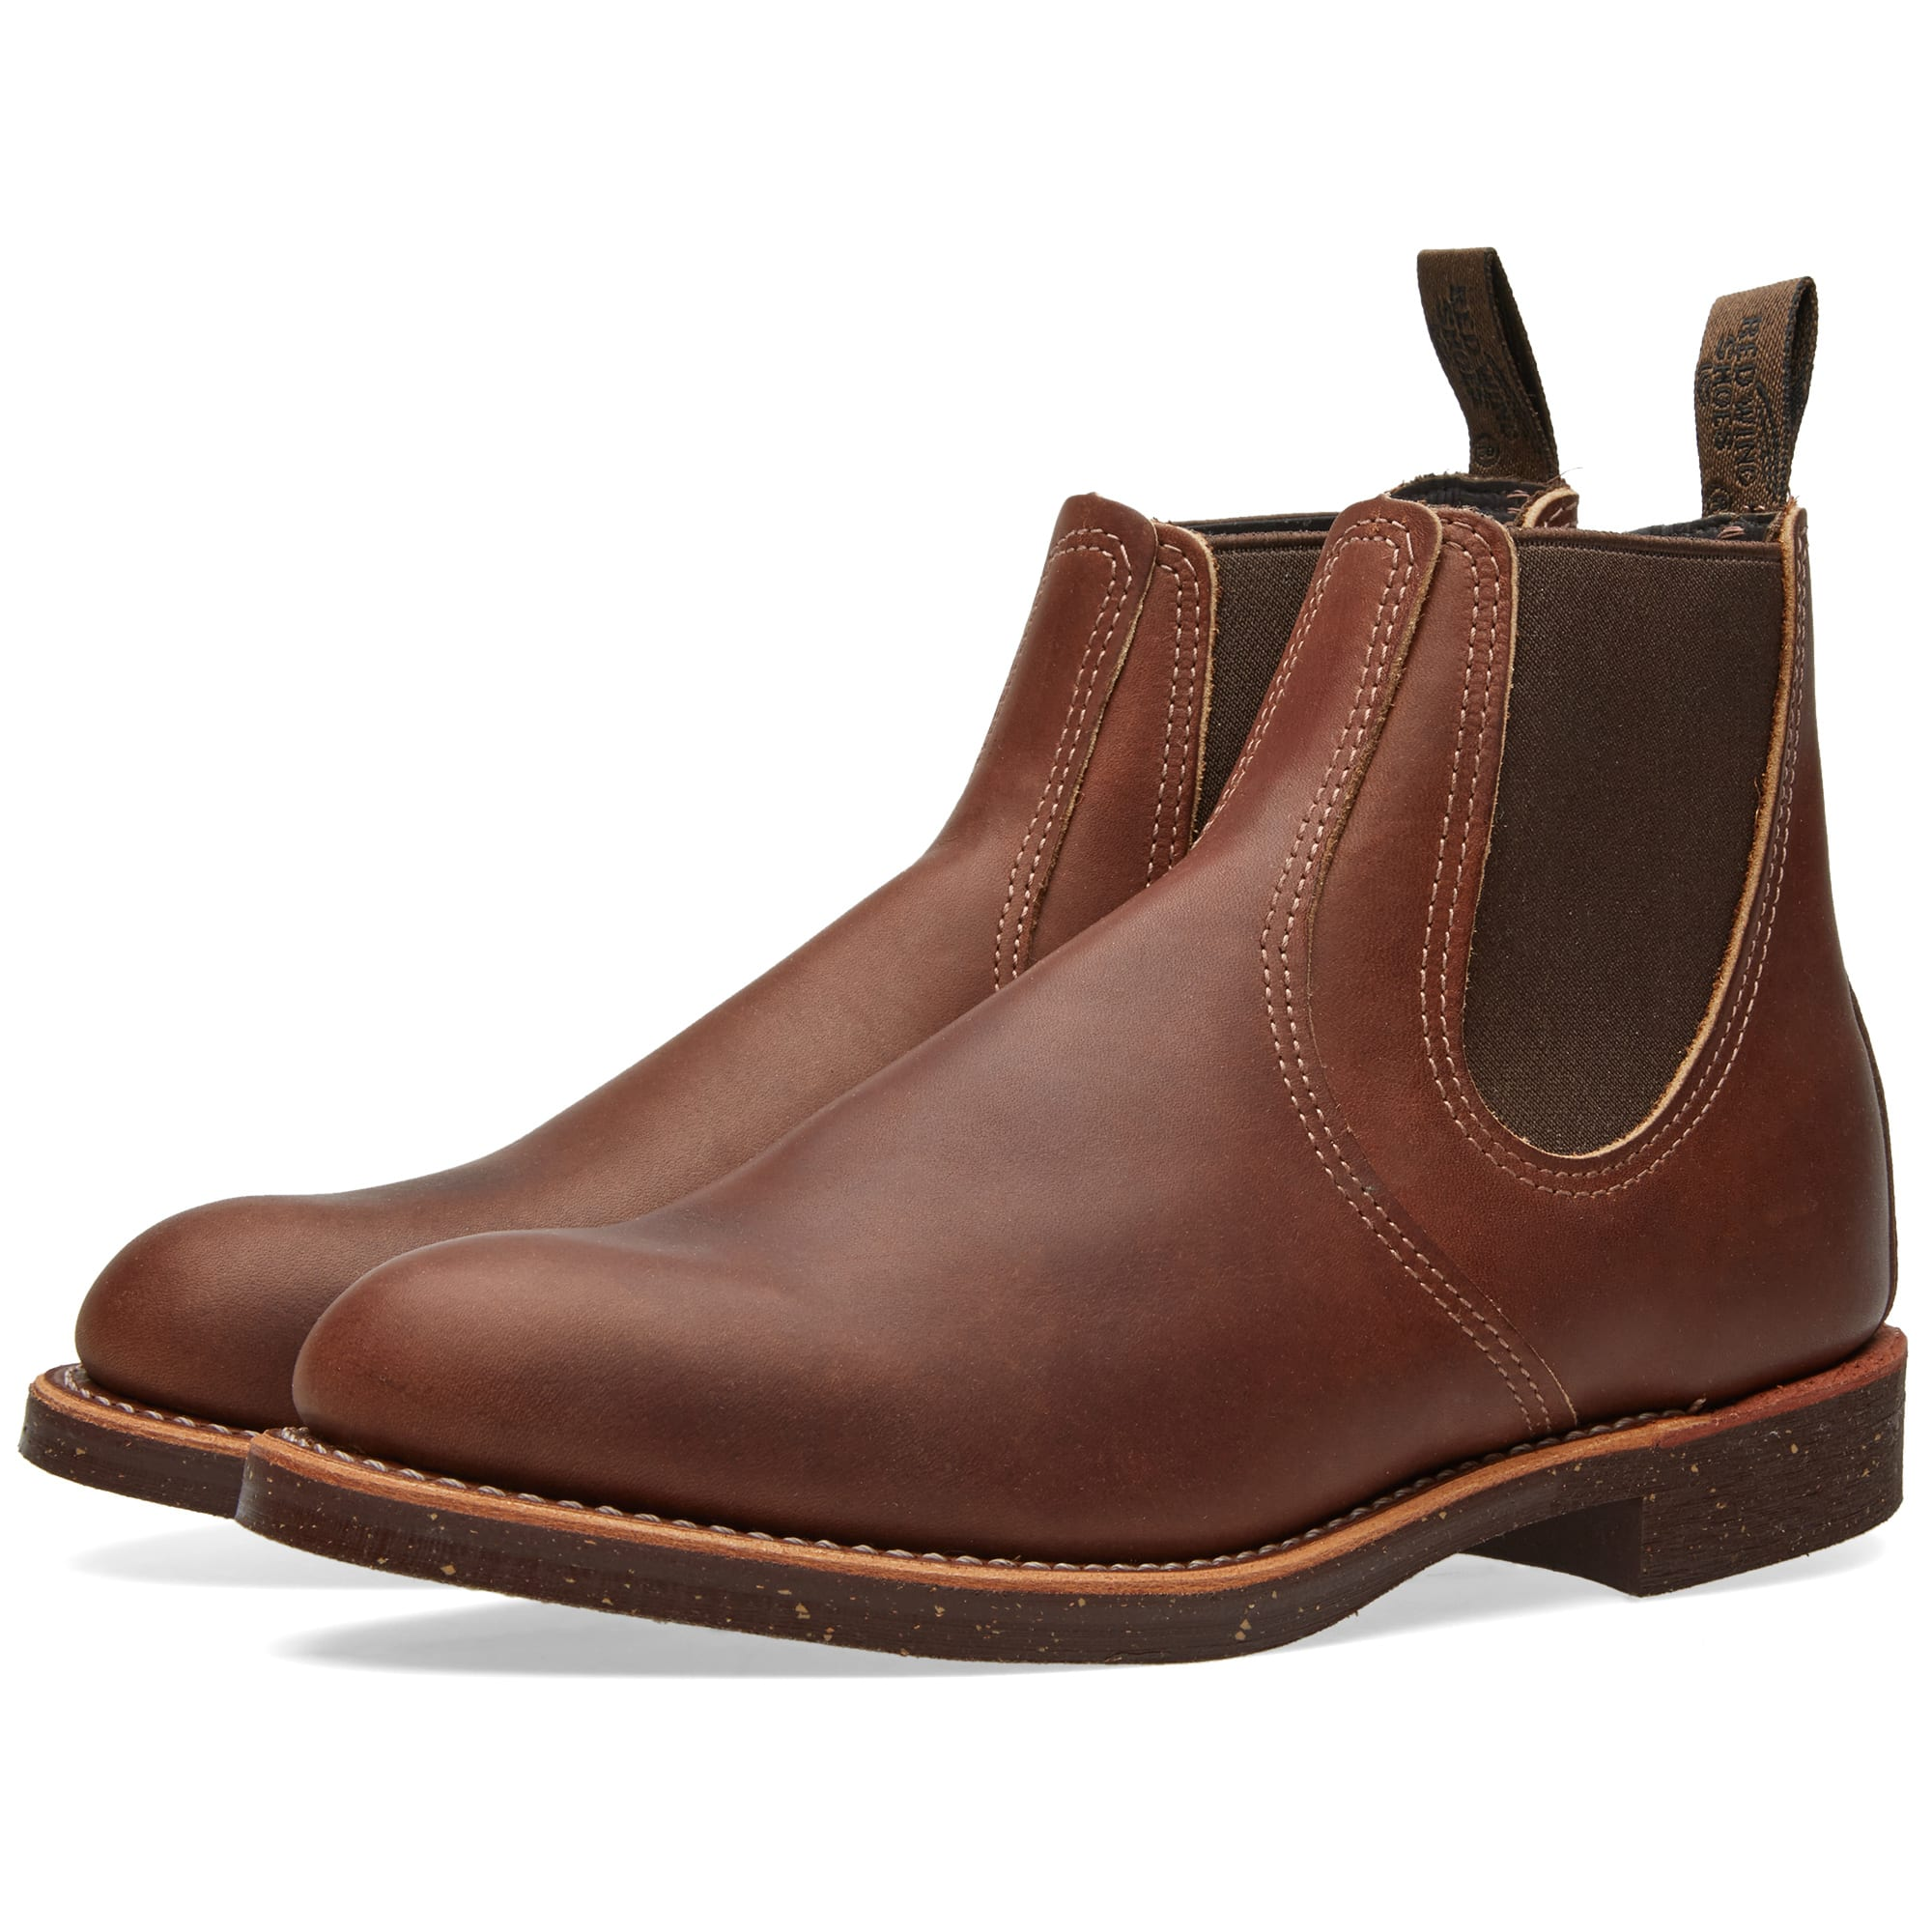 RED WING 8201 HERITAGE CHELSEA RANCHER BOOT